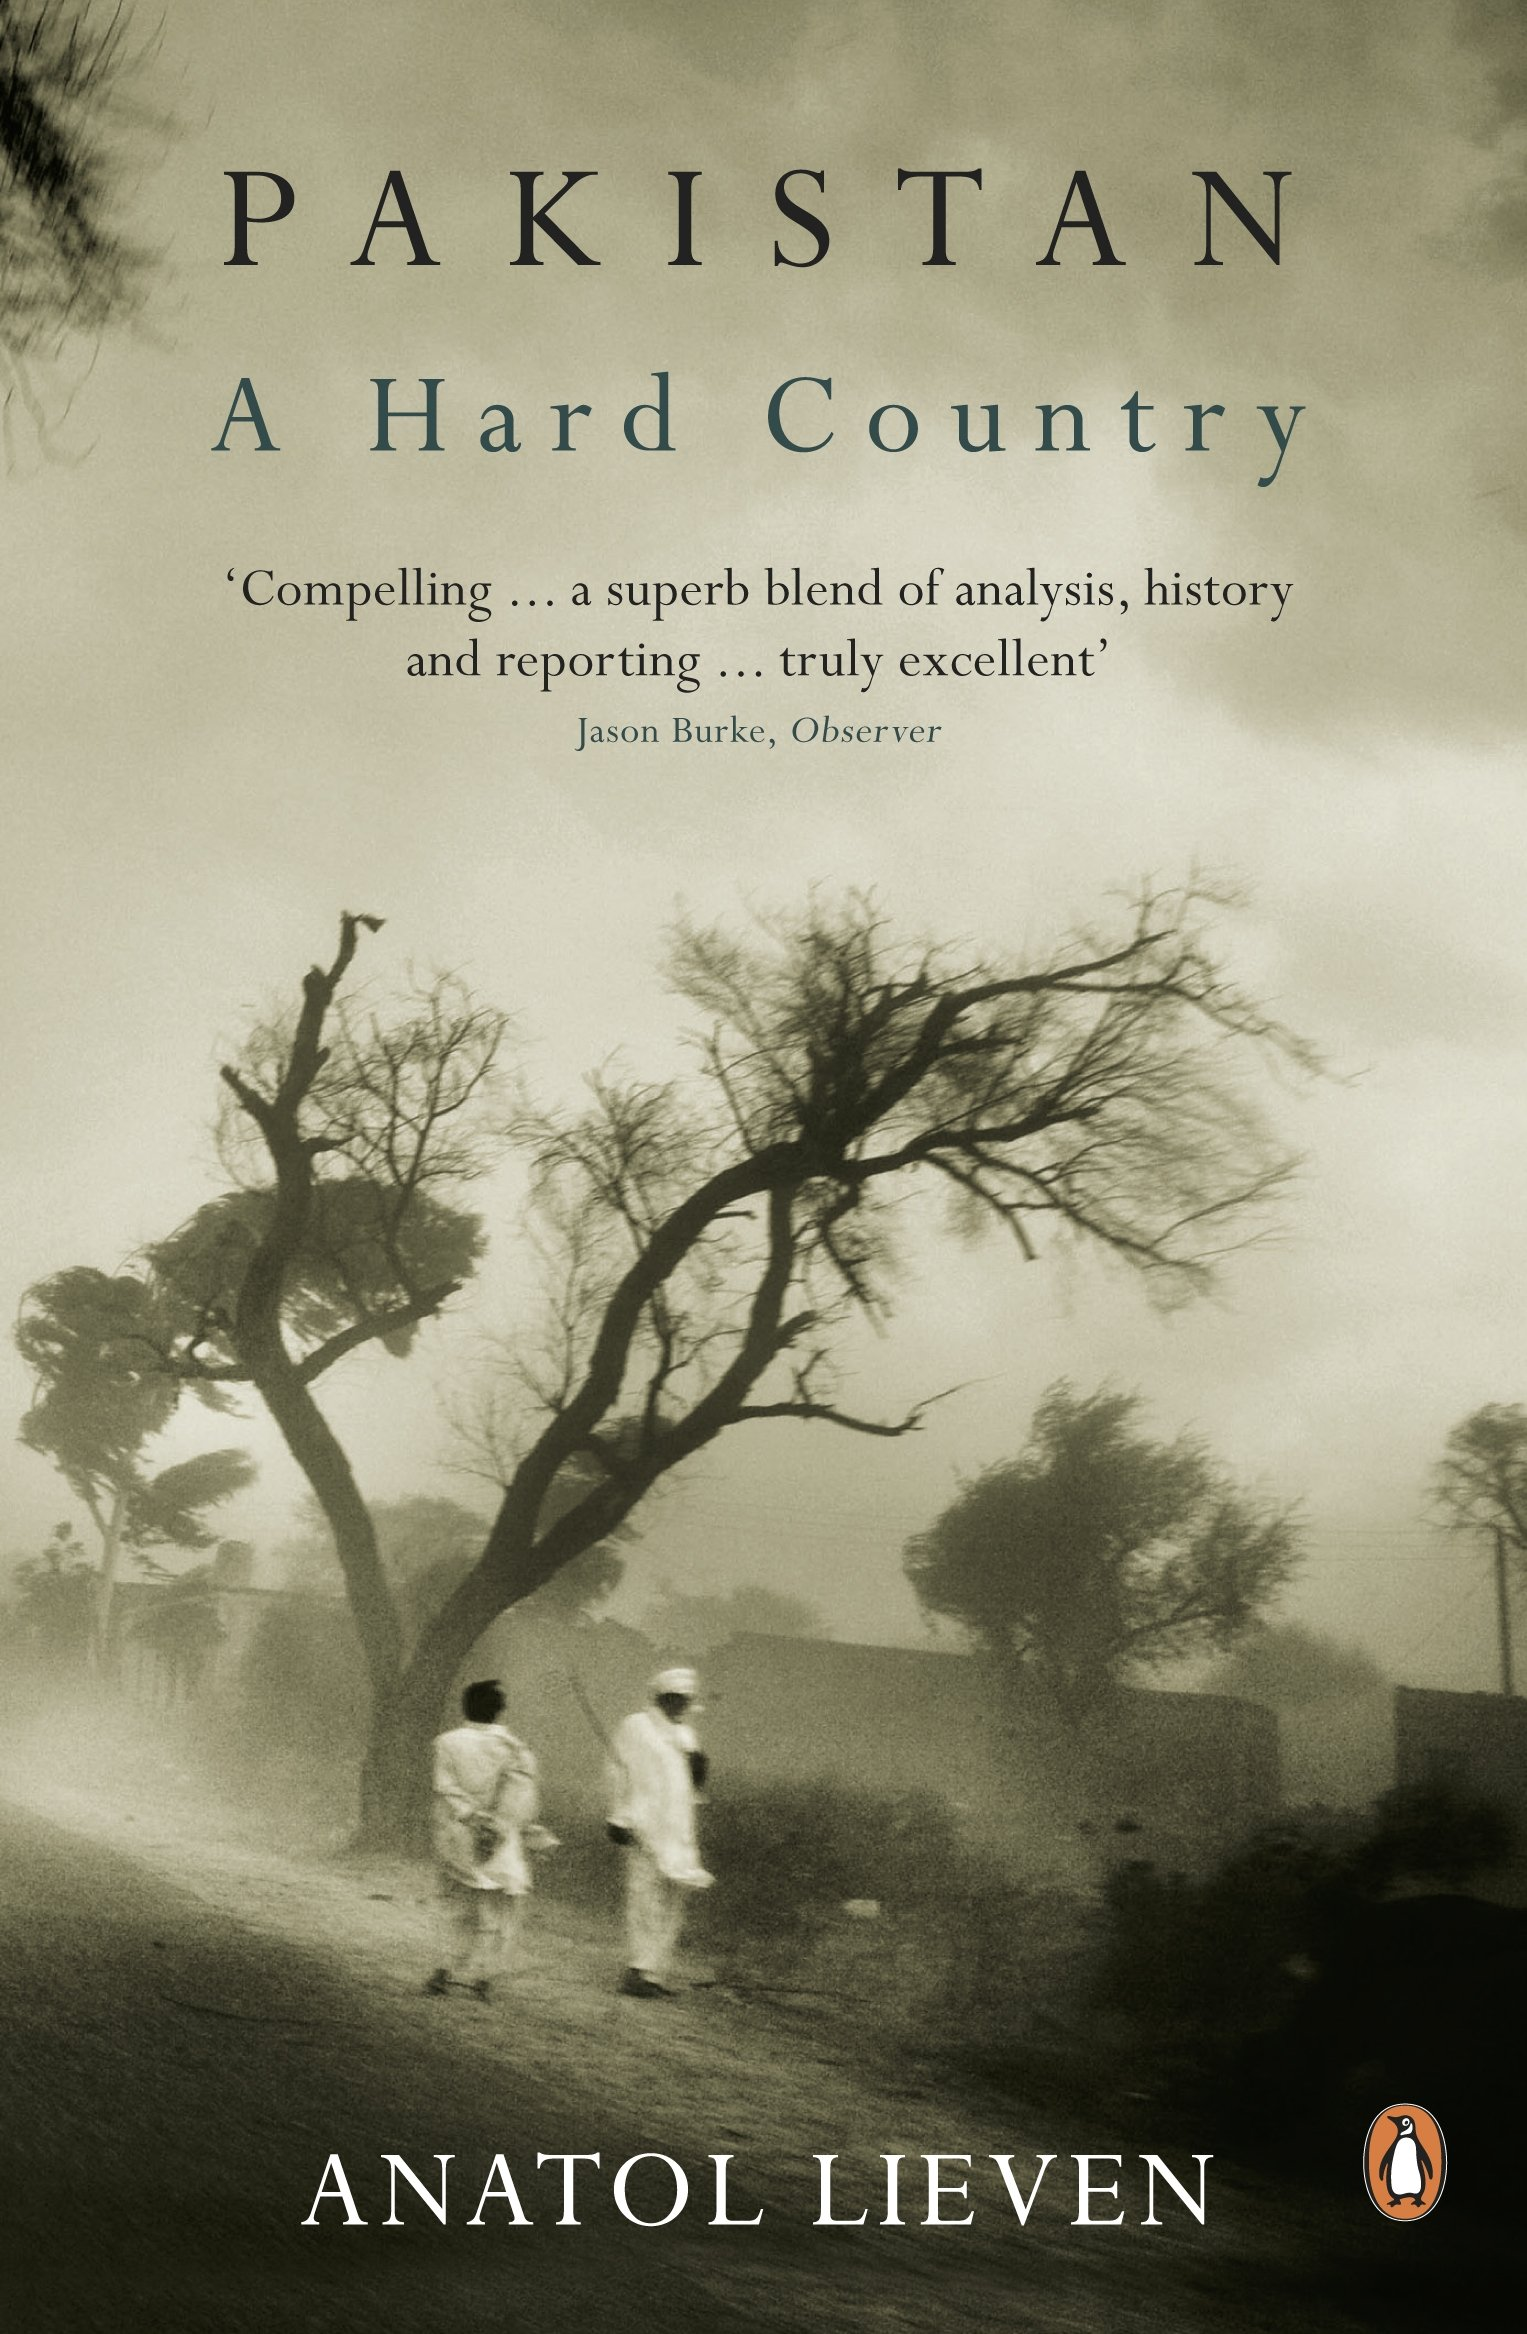 Image OfPakistan: A Hard Country